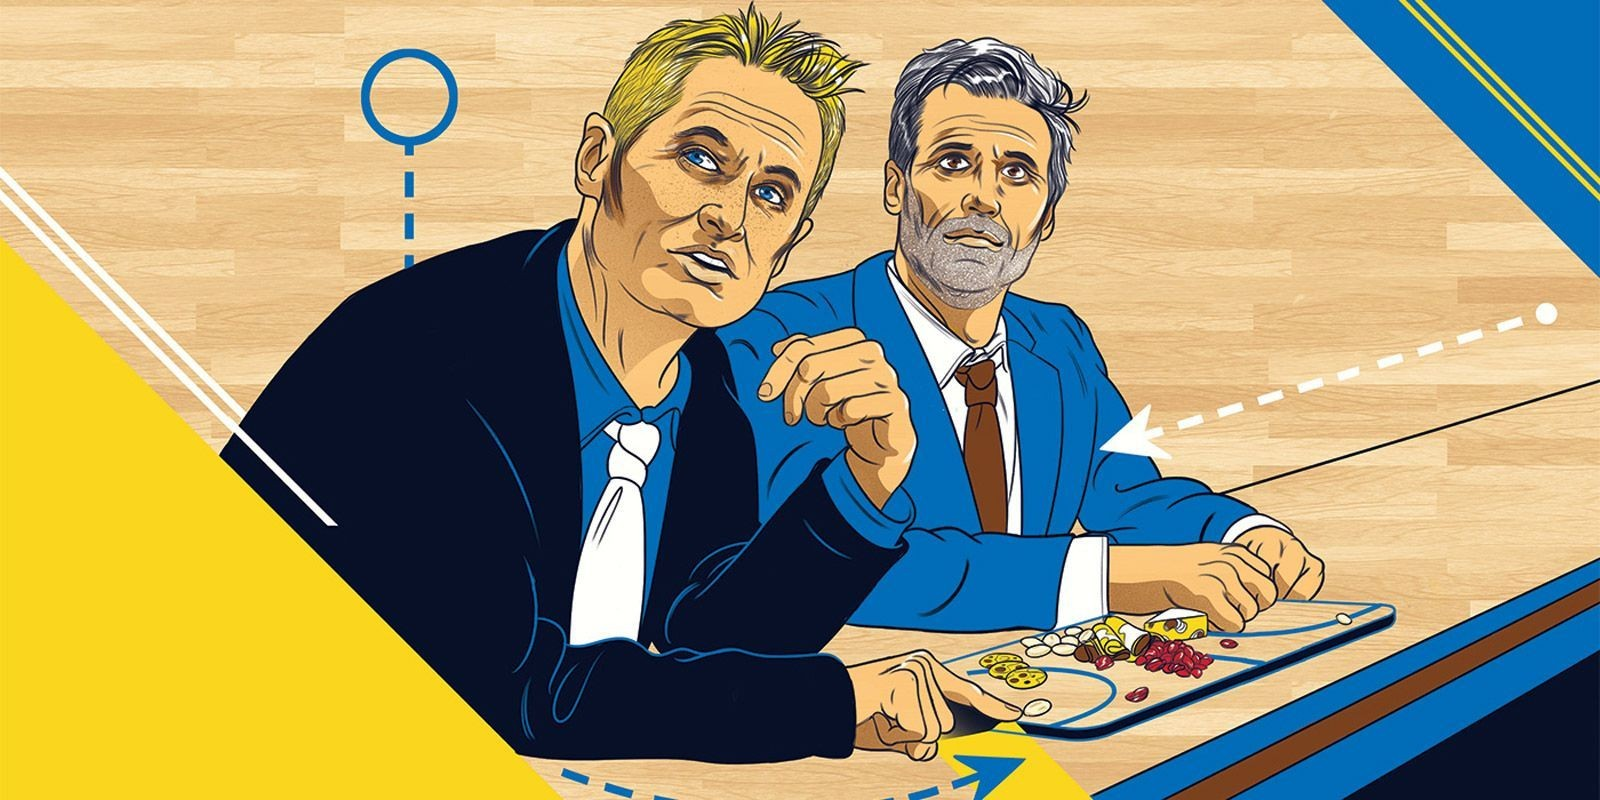 The Charcuterie Board That Revolutionized Basketball